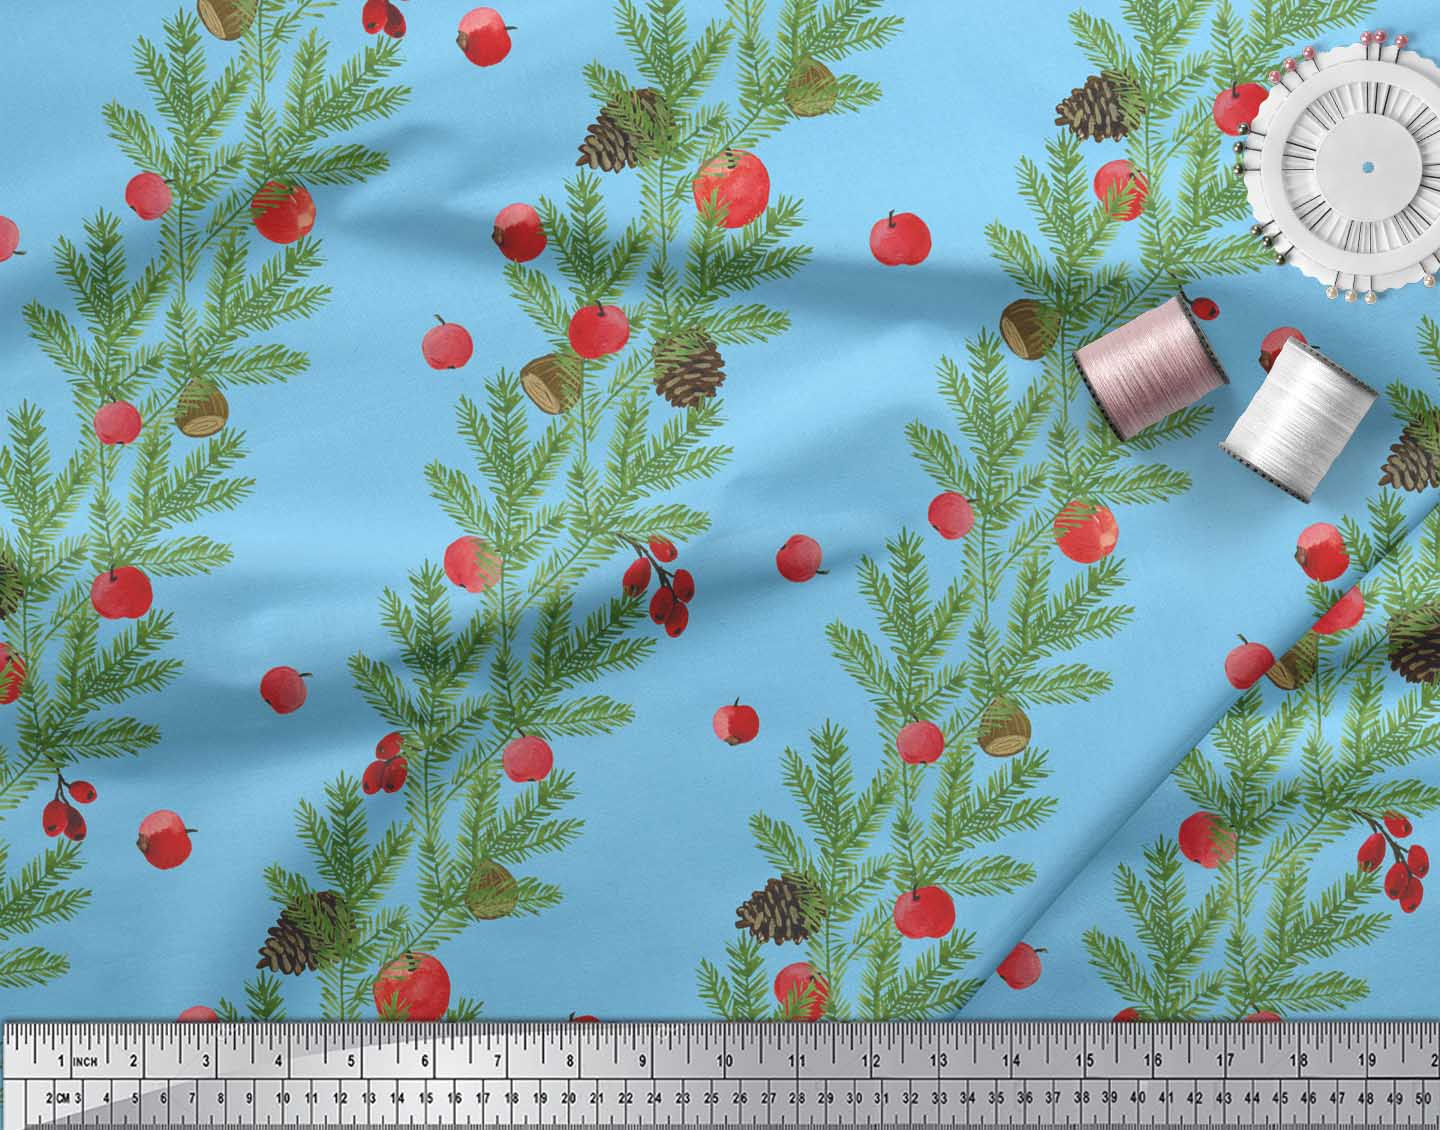 Soimoi-Blue-Cotton-Poplin-Fabric-Cherry-amp-Pine-Leaves-Print-Fabric-hb7 thumbnail 4